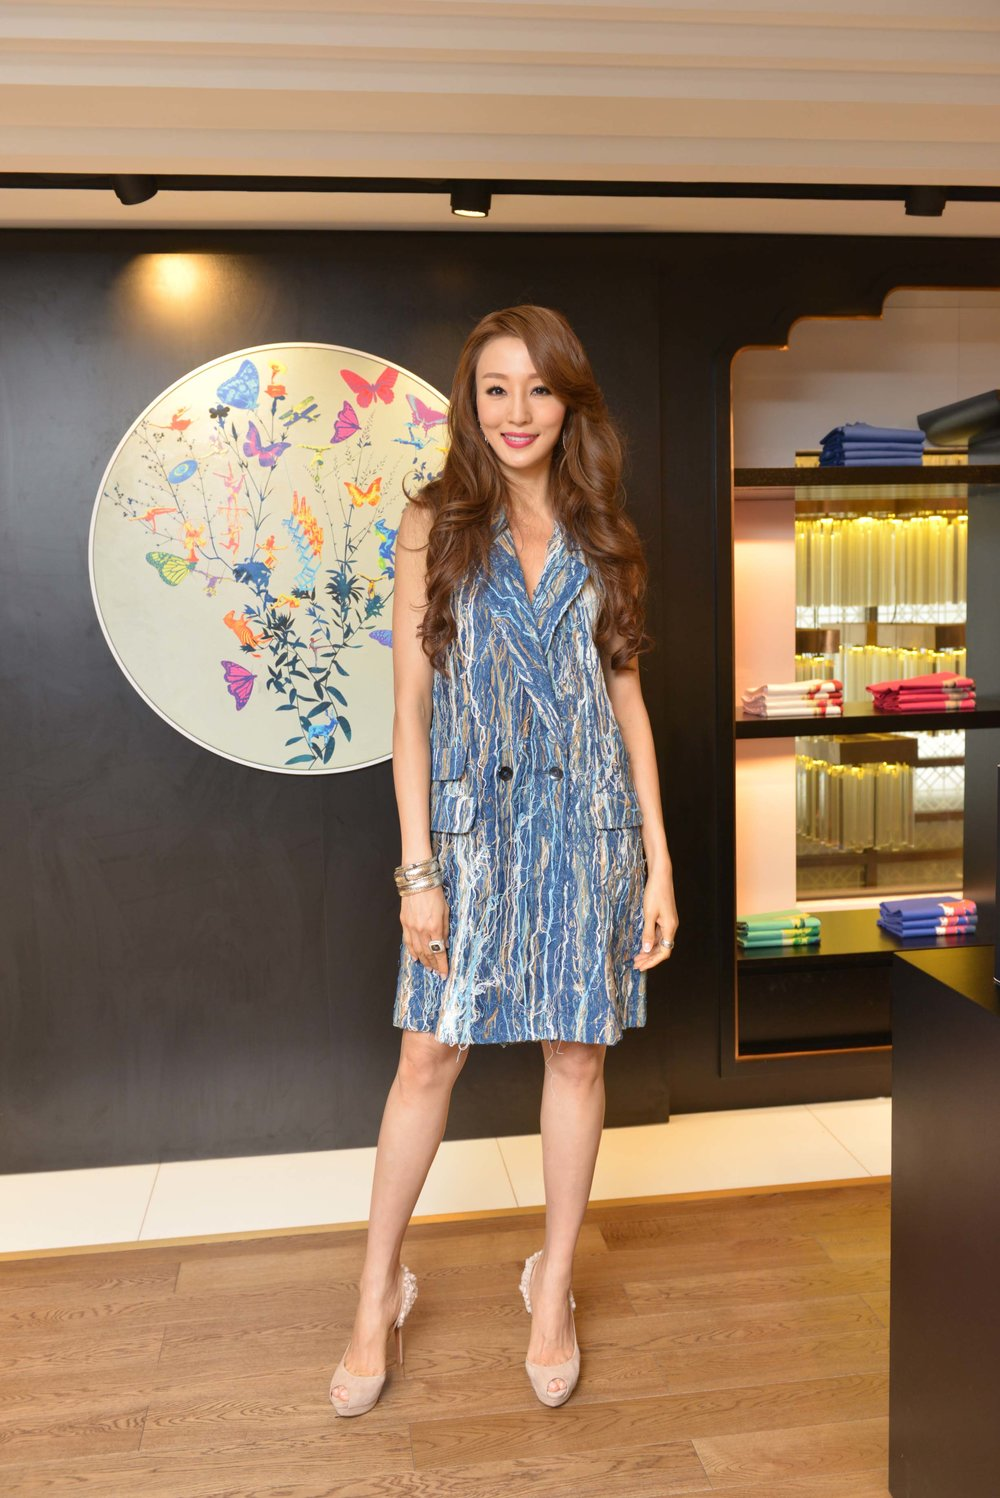 the-ecochic-design-award-2014-15-celebrity-supporter-eunis-chan-in-ecda13-hk-finalist-alex-law-reconstruction-outfit.jpg